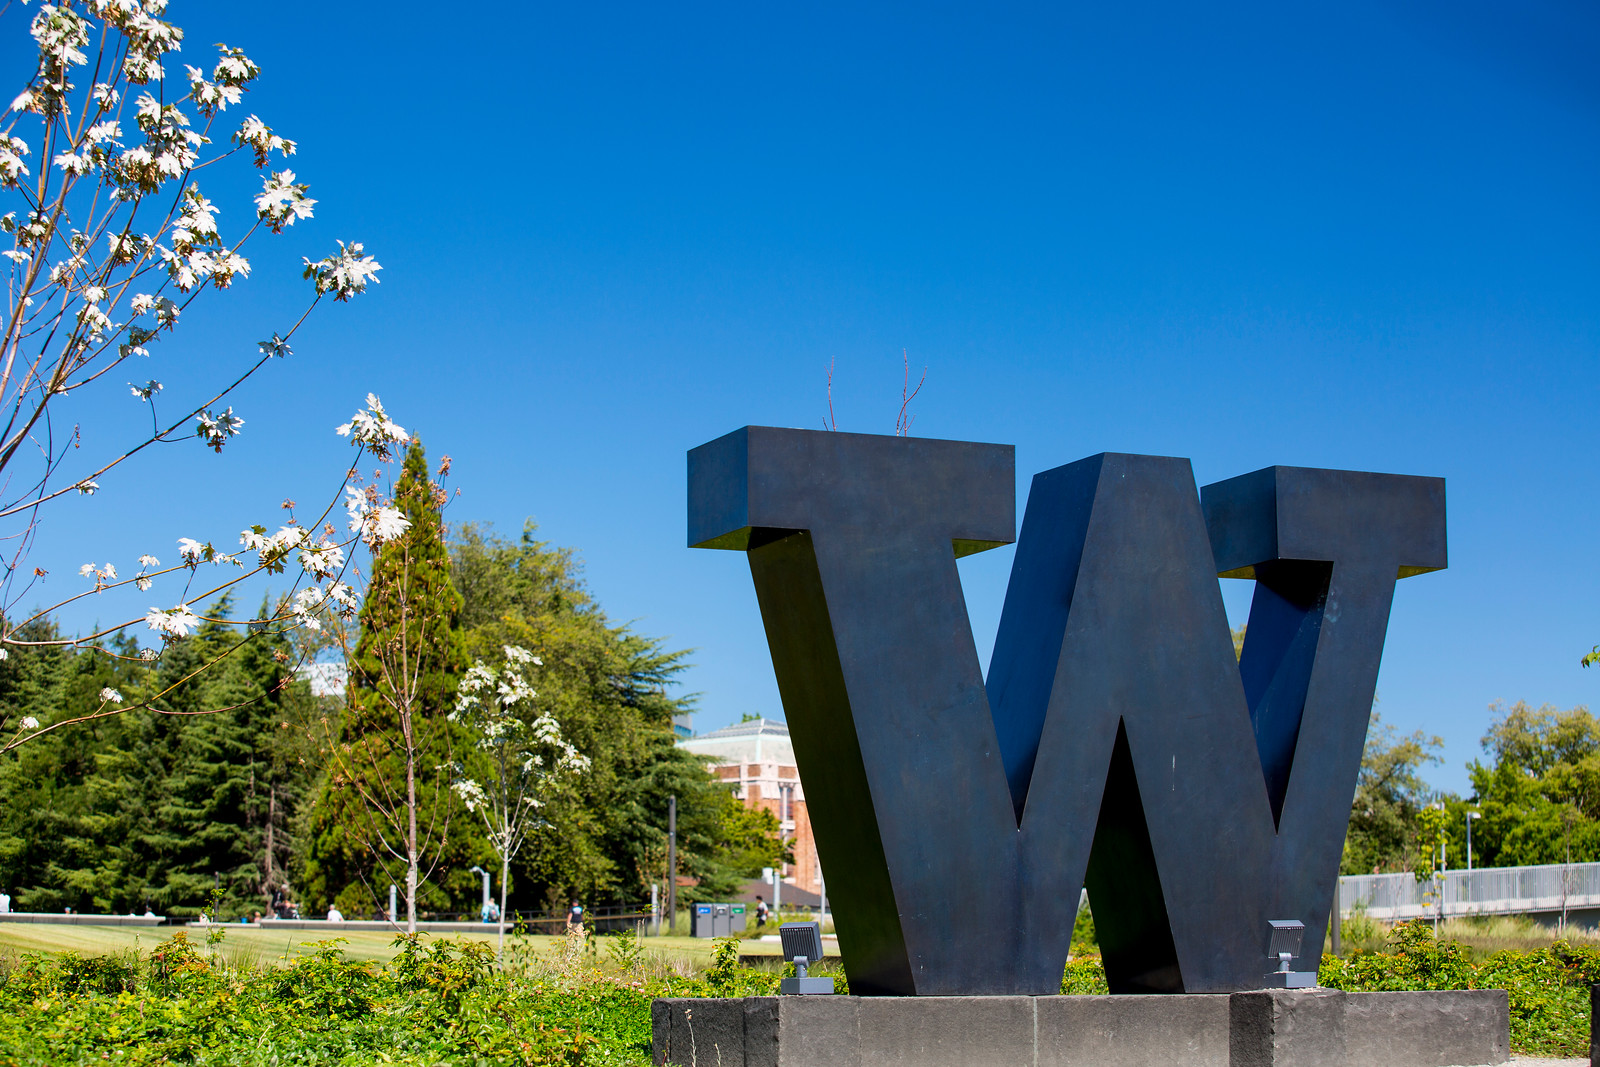 W Located on Rainier Vista. Photo by Dennis Wise.